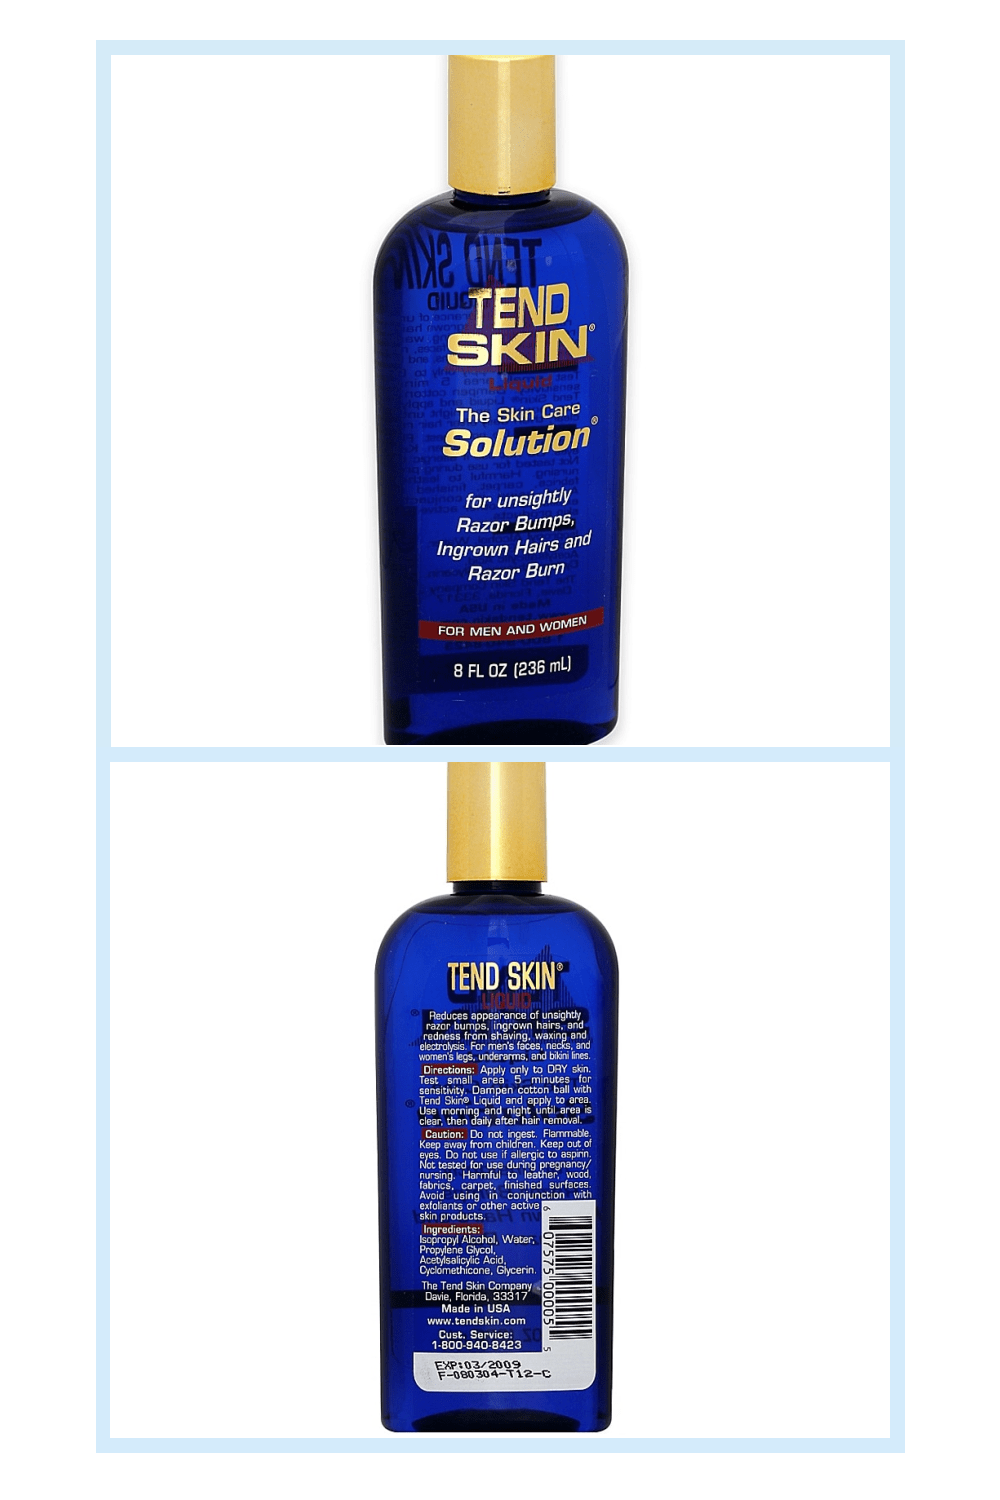 Tend Skin The Skin Care Solution 8 Oz Unsightly Razor Bumps Ingrown Hair And Razor Burns Bed Bath Beyond In 2020 Ingrown Hair Tend Skin Razor Bumps